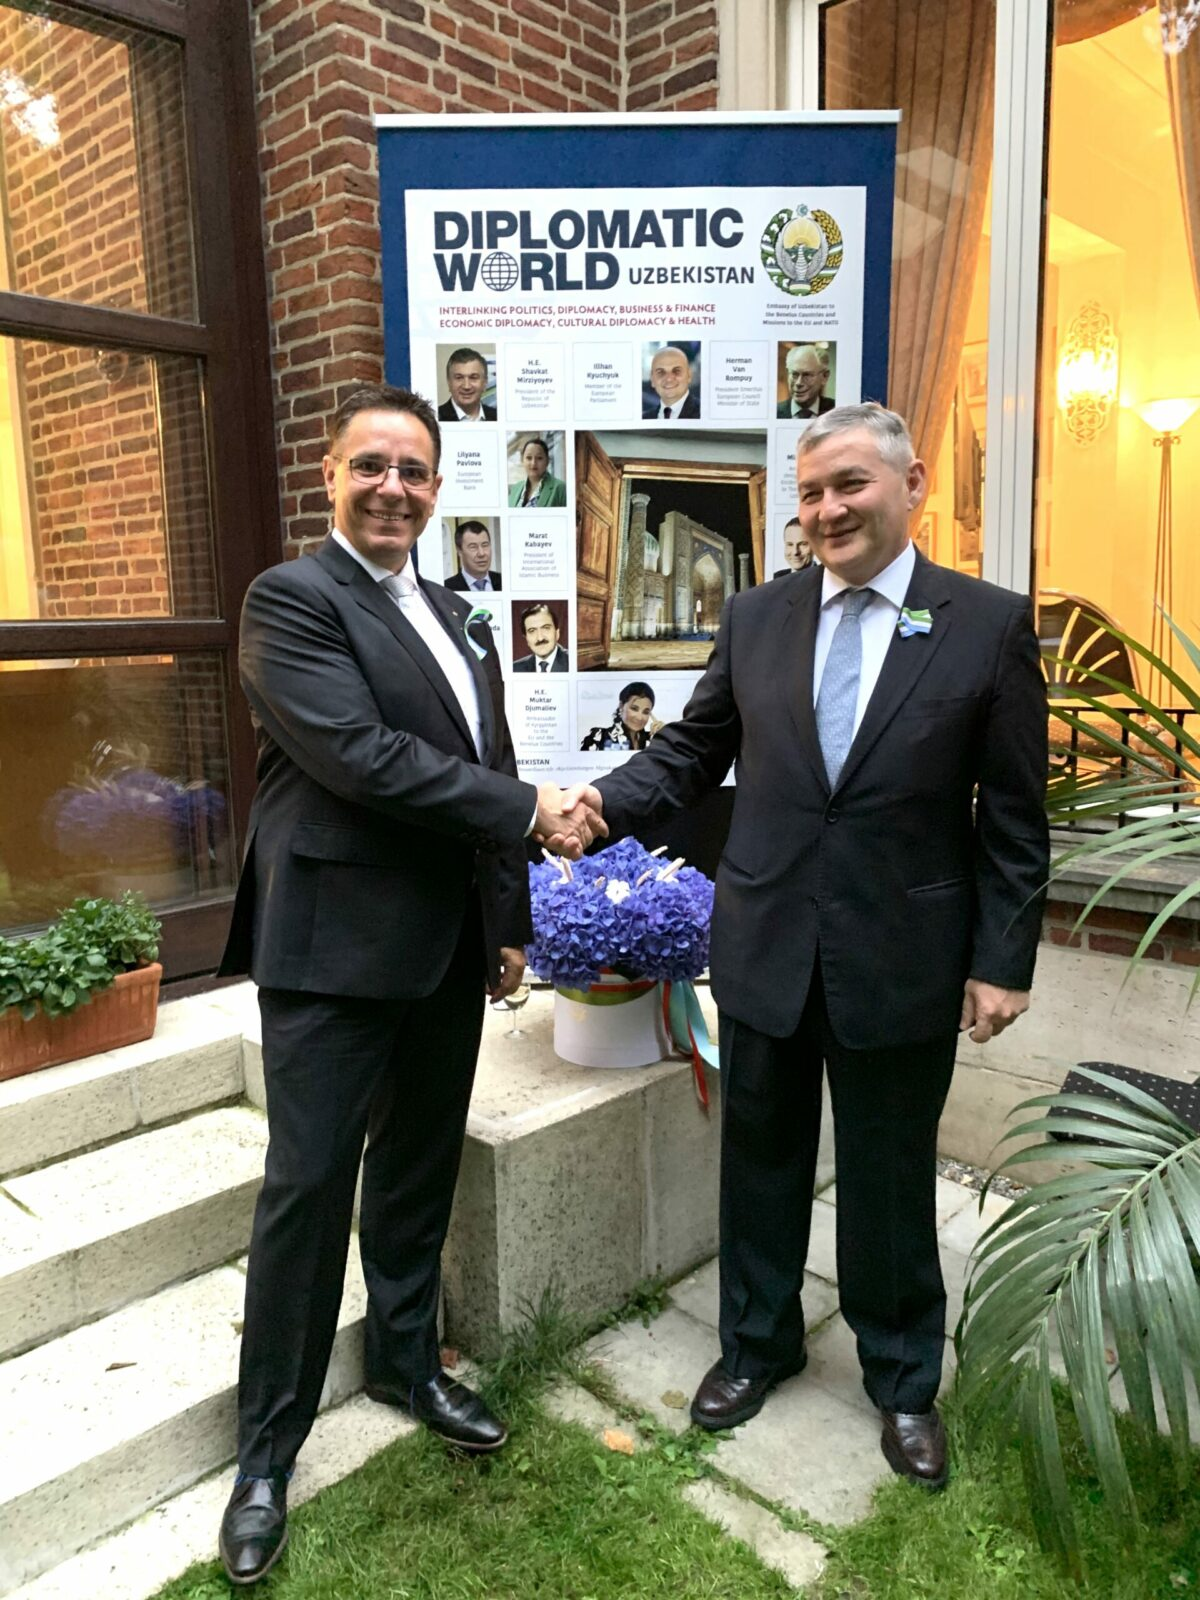 Marc Schmitz, president of the UIHJ and H.E. Dilyor Khakimov, Ambassador of the Republic of Uzbekistan to the Benelux countries